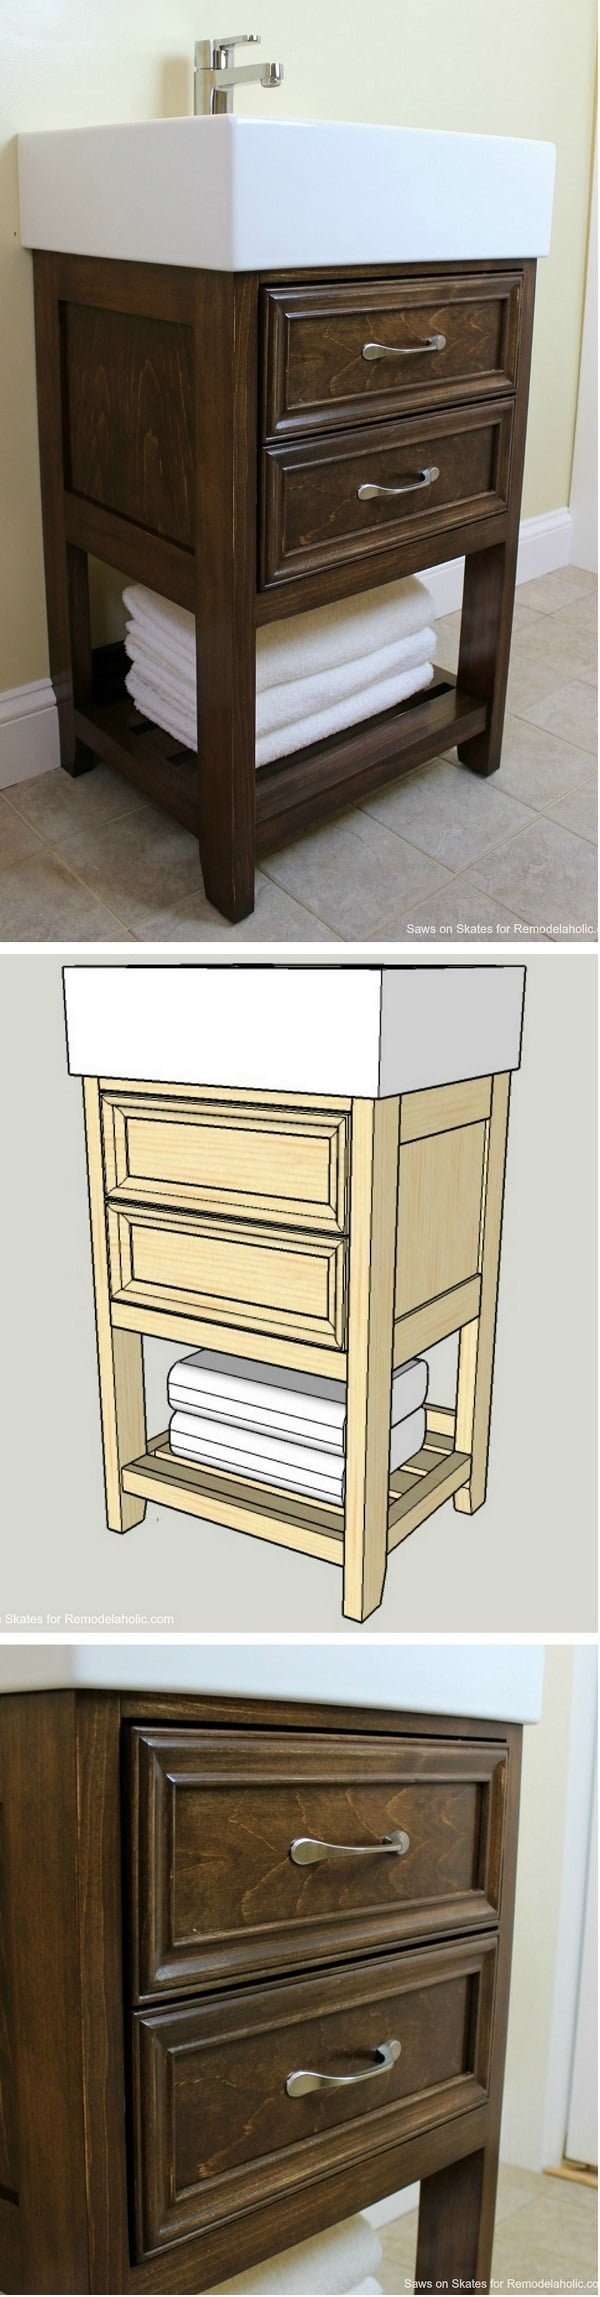 How to make a  sink vanity IKEA hack